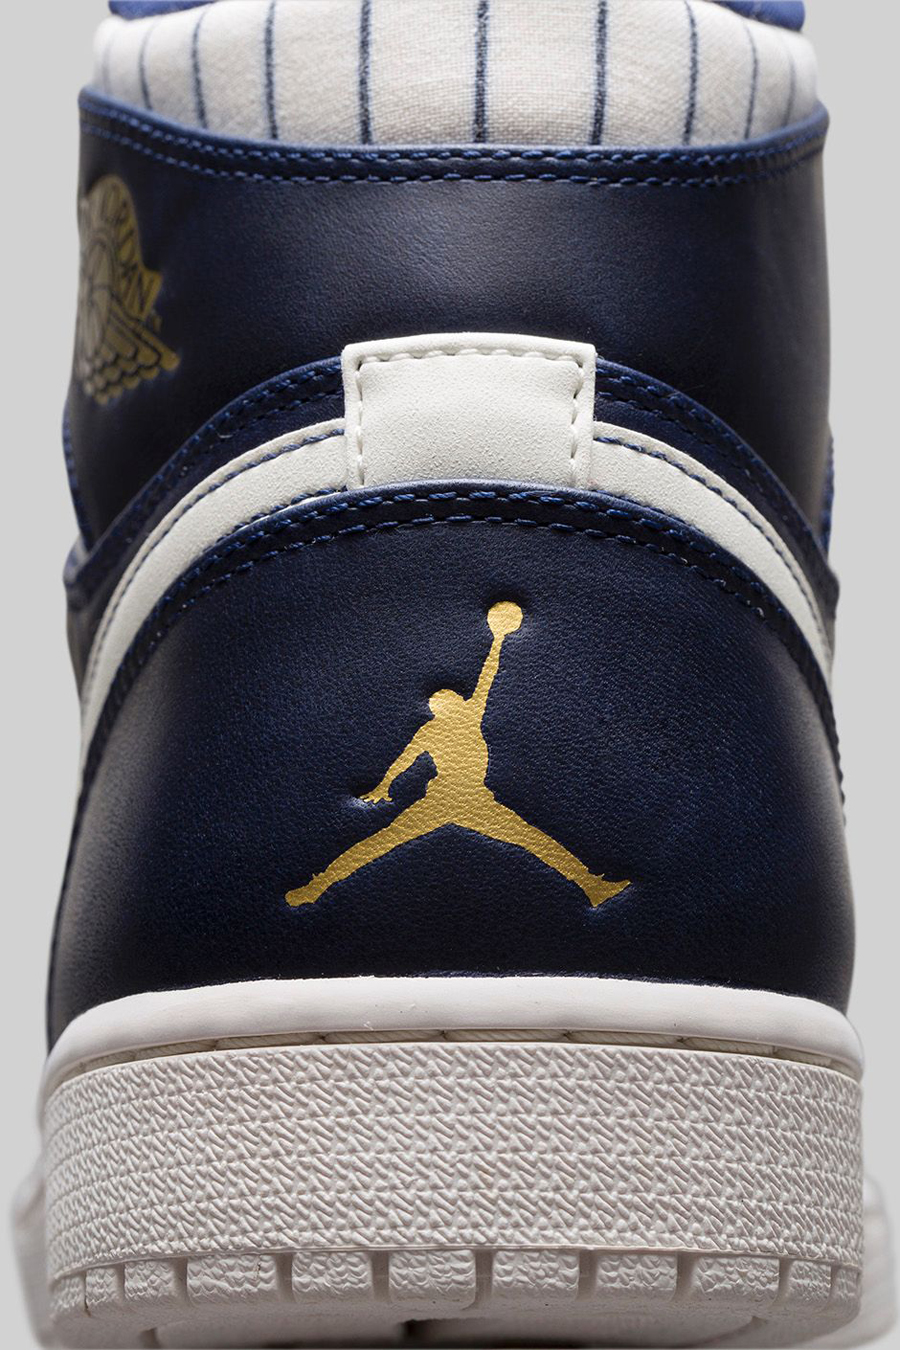 88f7394cd9ea Air Jordan 1 Retro Jeter Color  Midnight Navy Metallic Gold-Sail Style  Code  715854-402. Release Date  09 20 14. Price   140. show comments